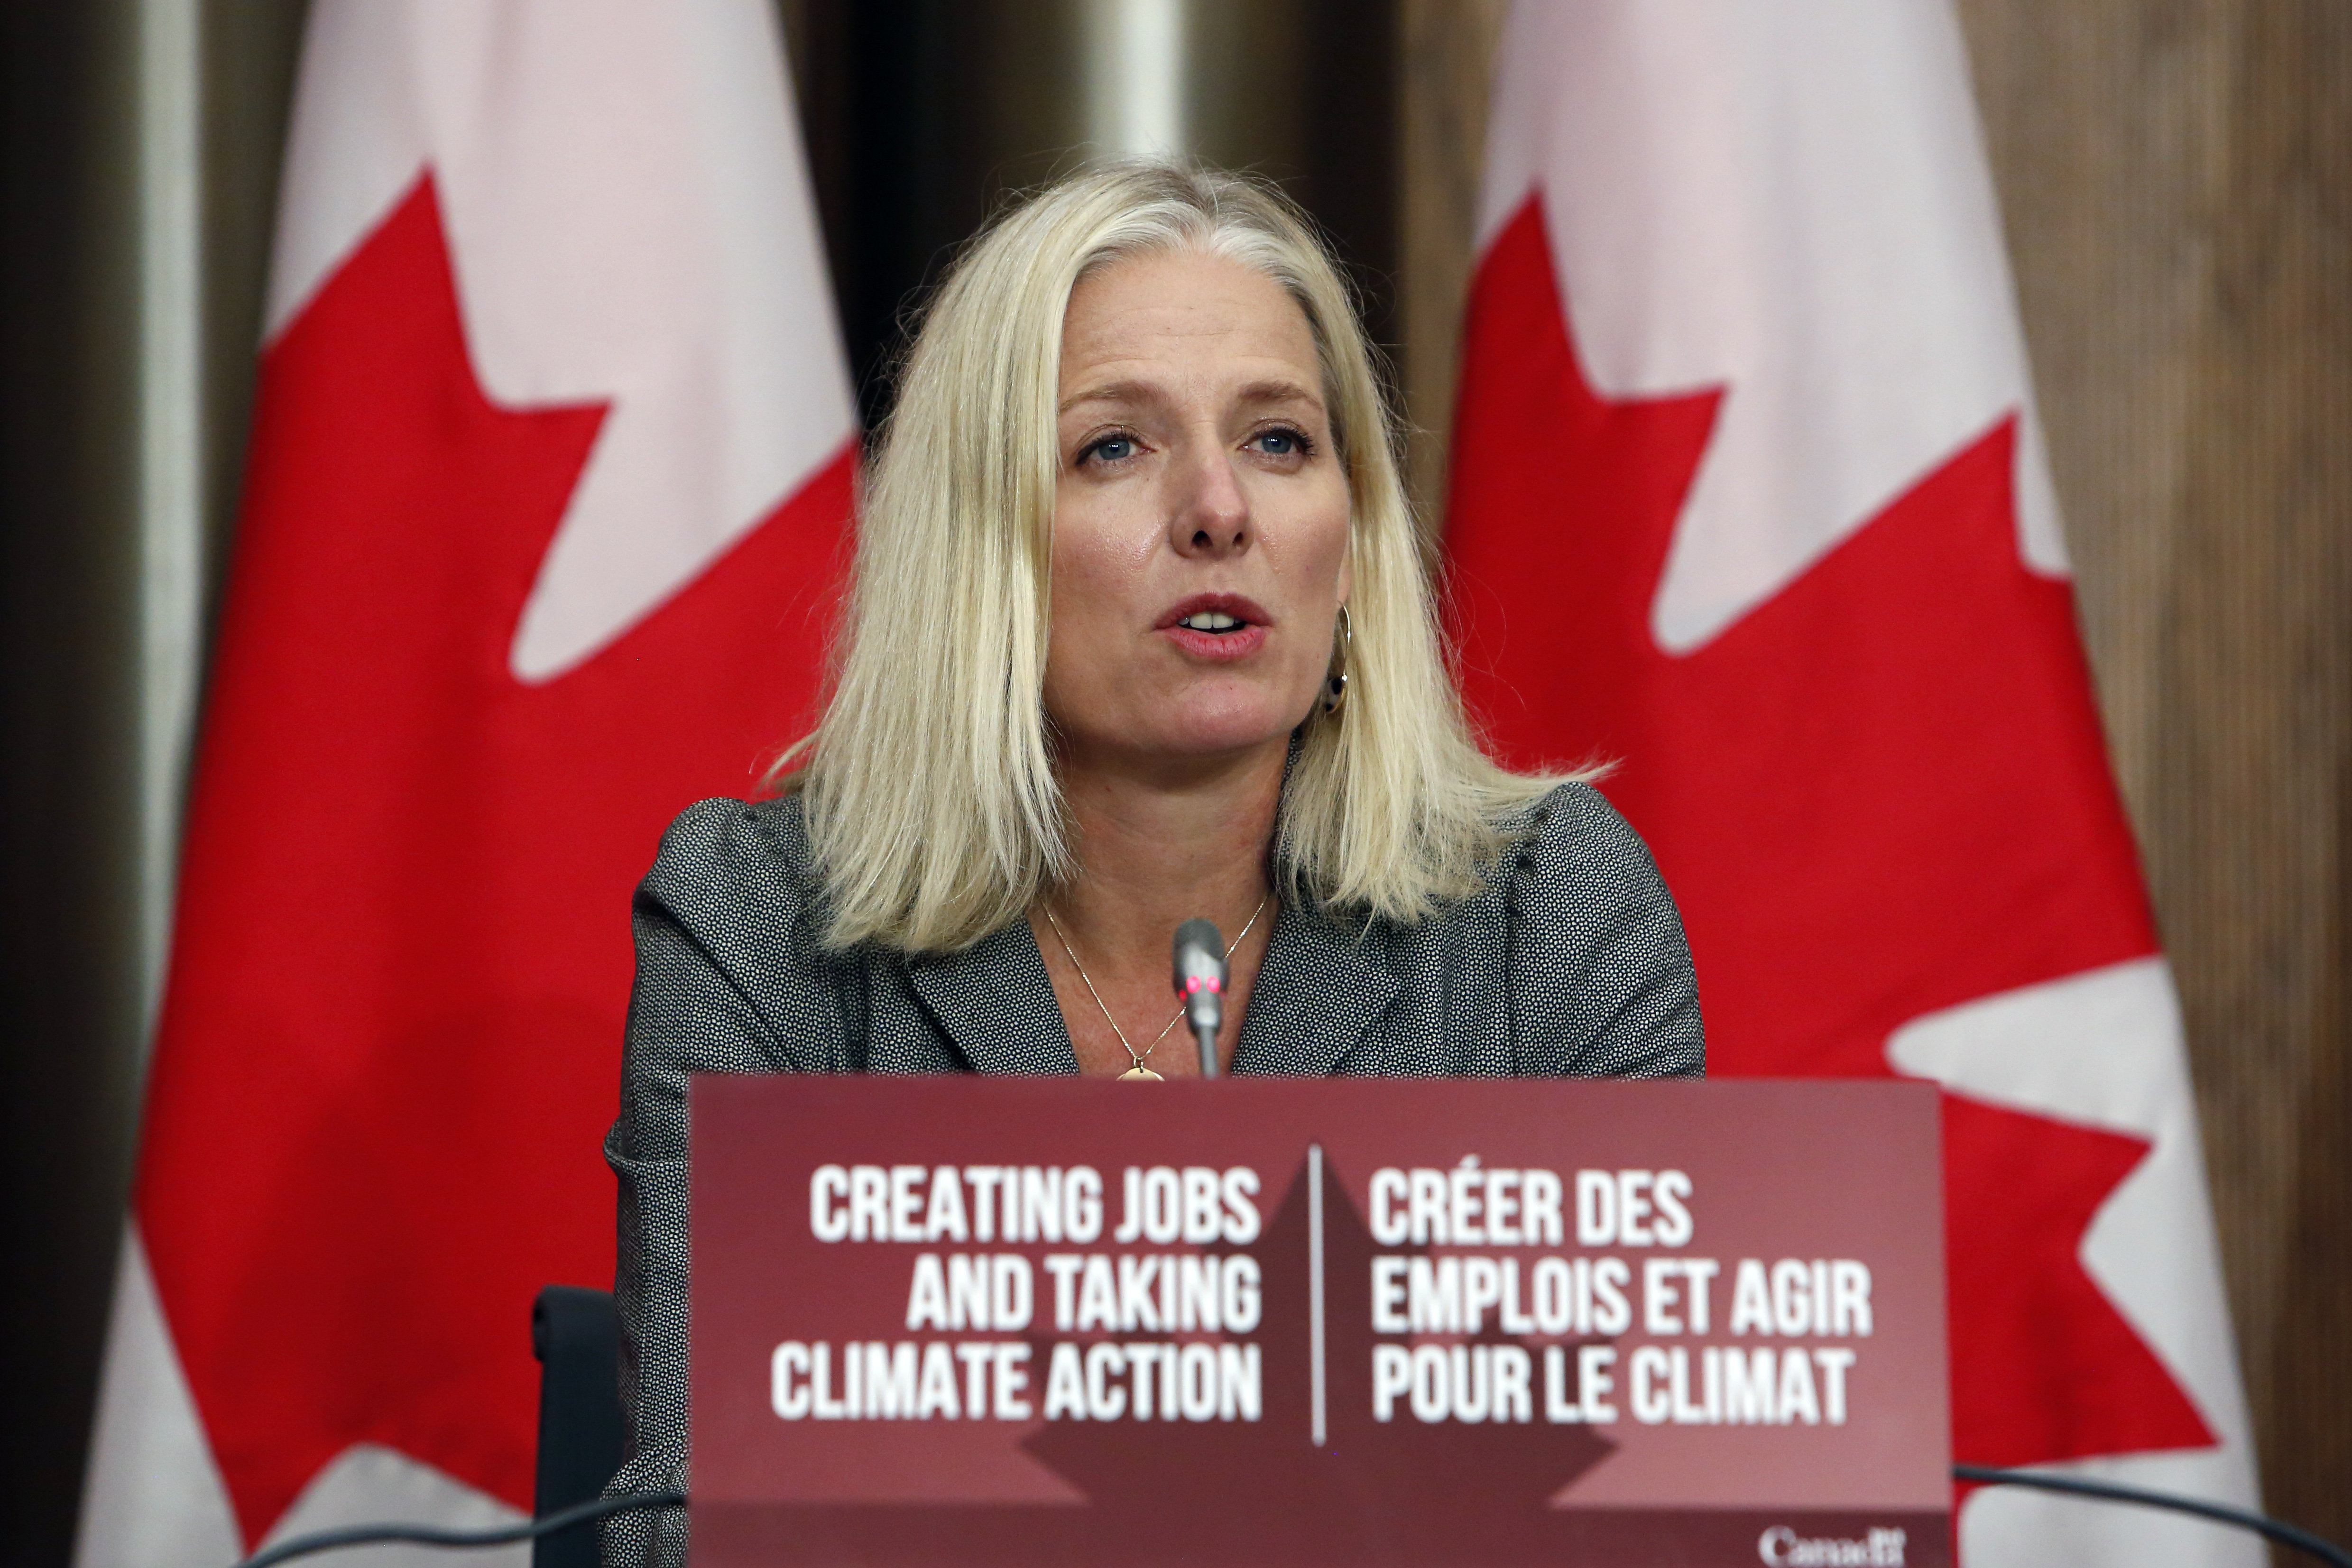 """Catherine McKenna, Canada's infrastructure and communities minister, speaks during a news conference in Ottawa, Ontario, Canada, on Thursday, October 1, 2020. She is speaking in front of a sign that reads """"Creating jobs and taking climate action"""" in English and in French. Two red-and-white Canadian flags stand behind her."""